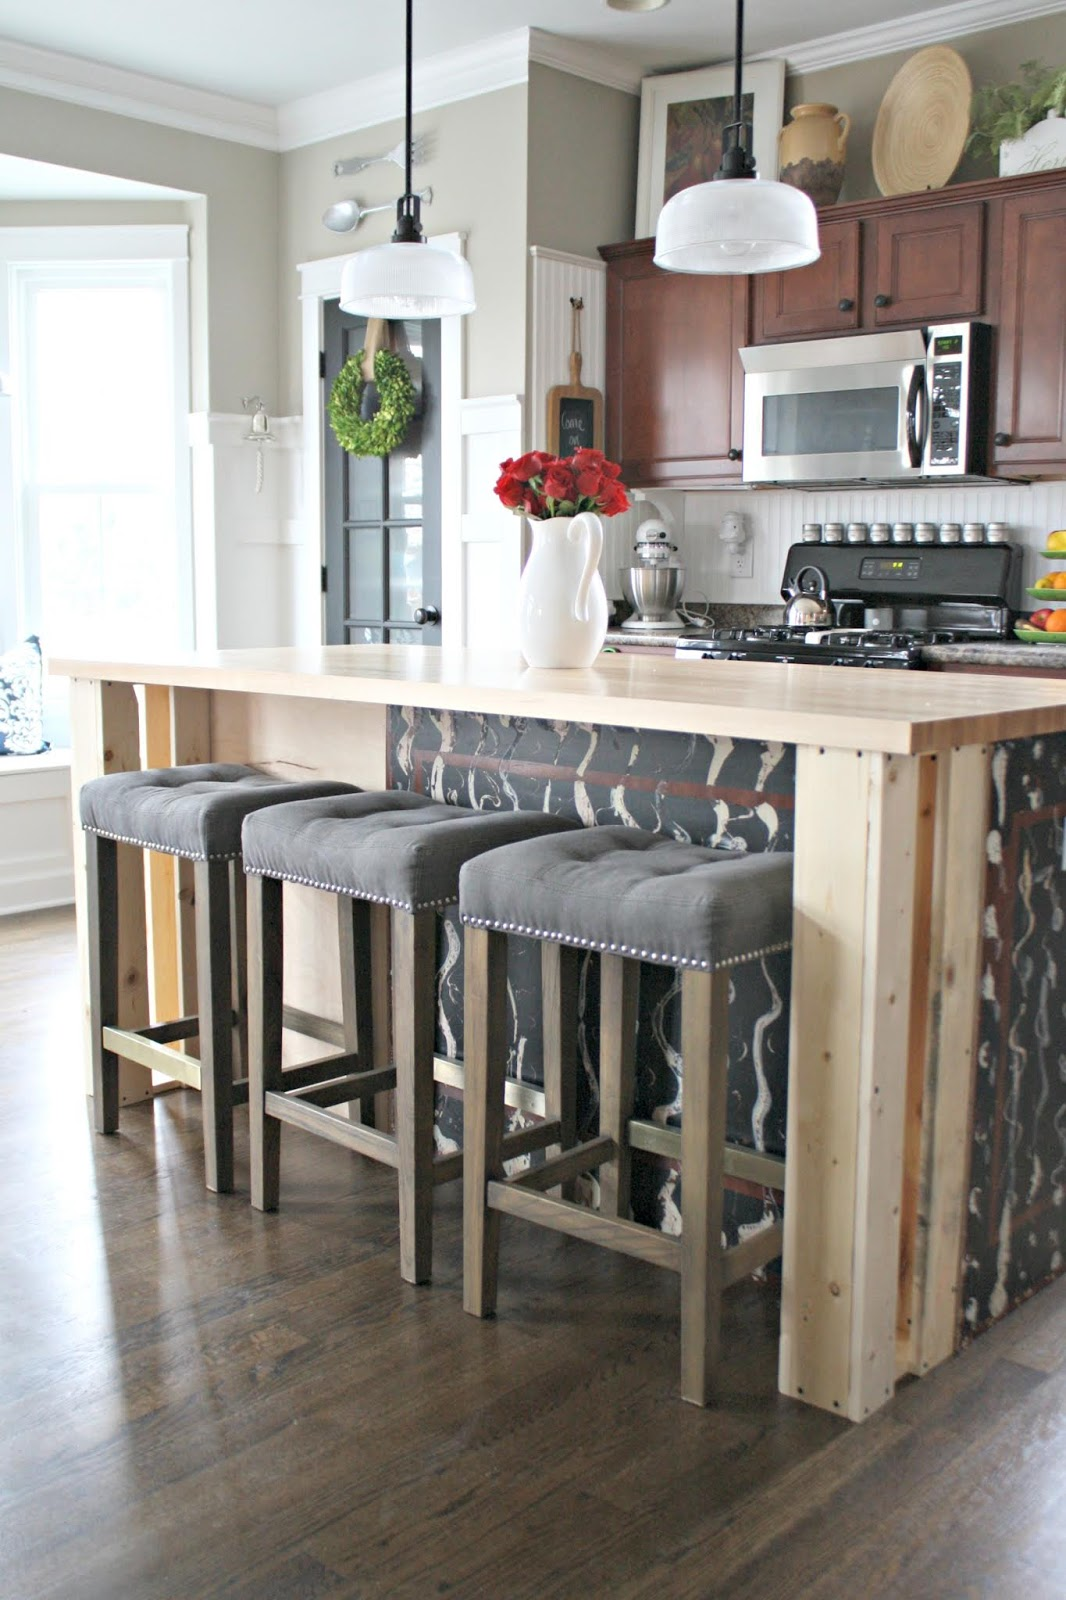 How to build out sides of kitchen island